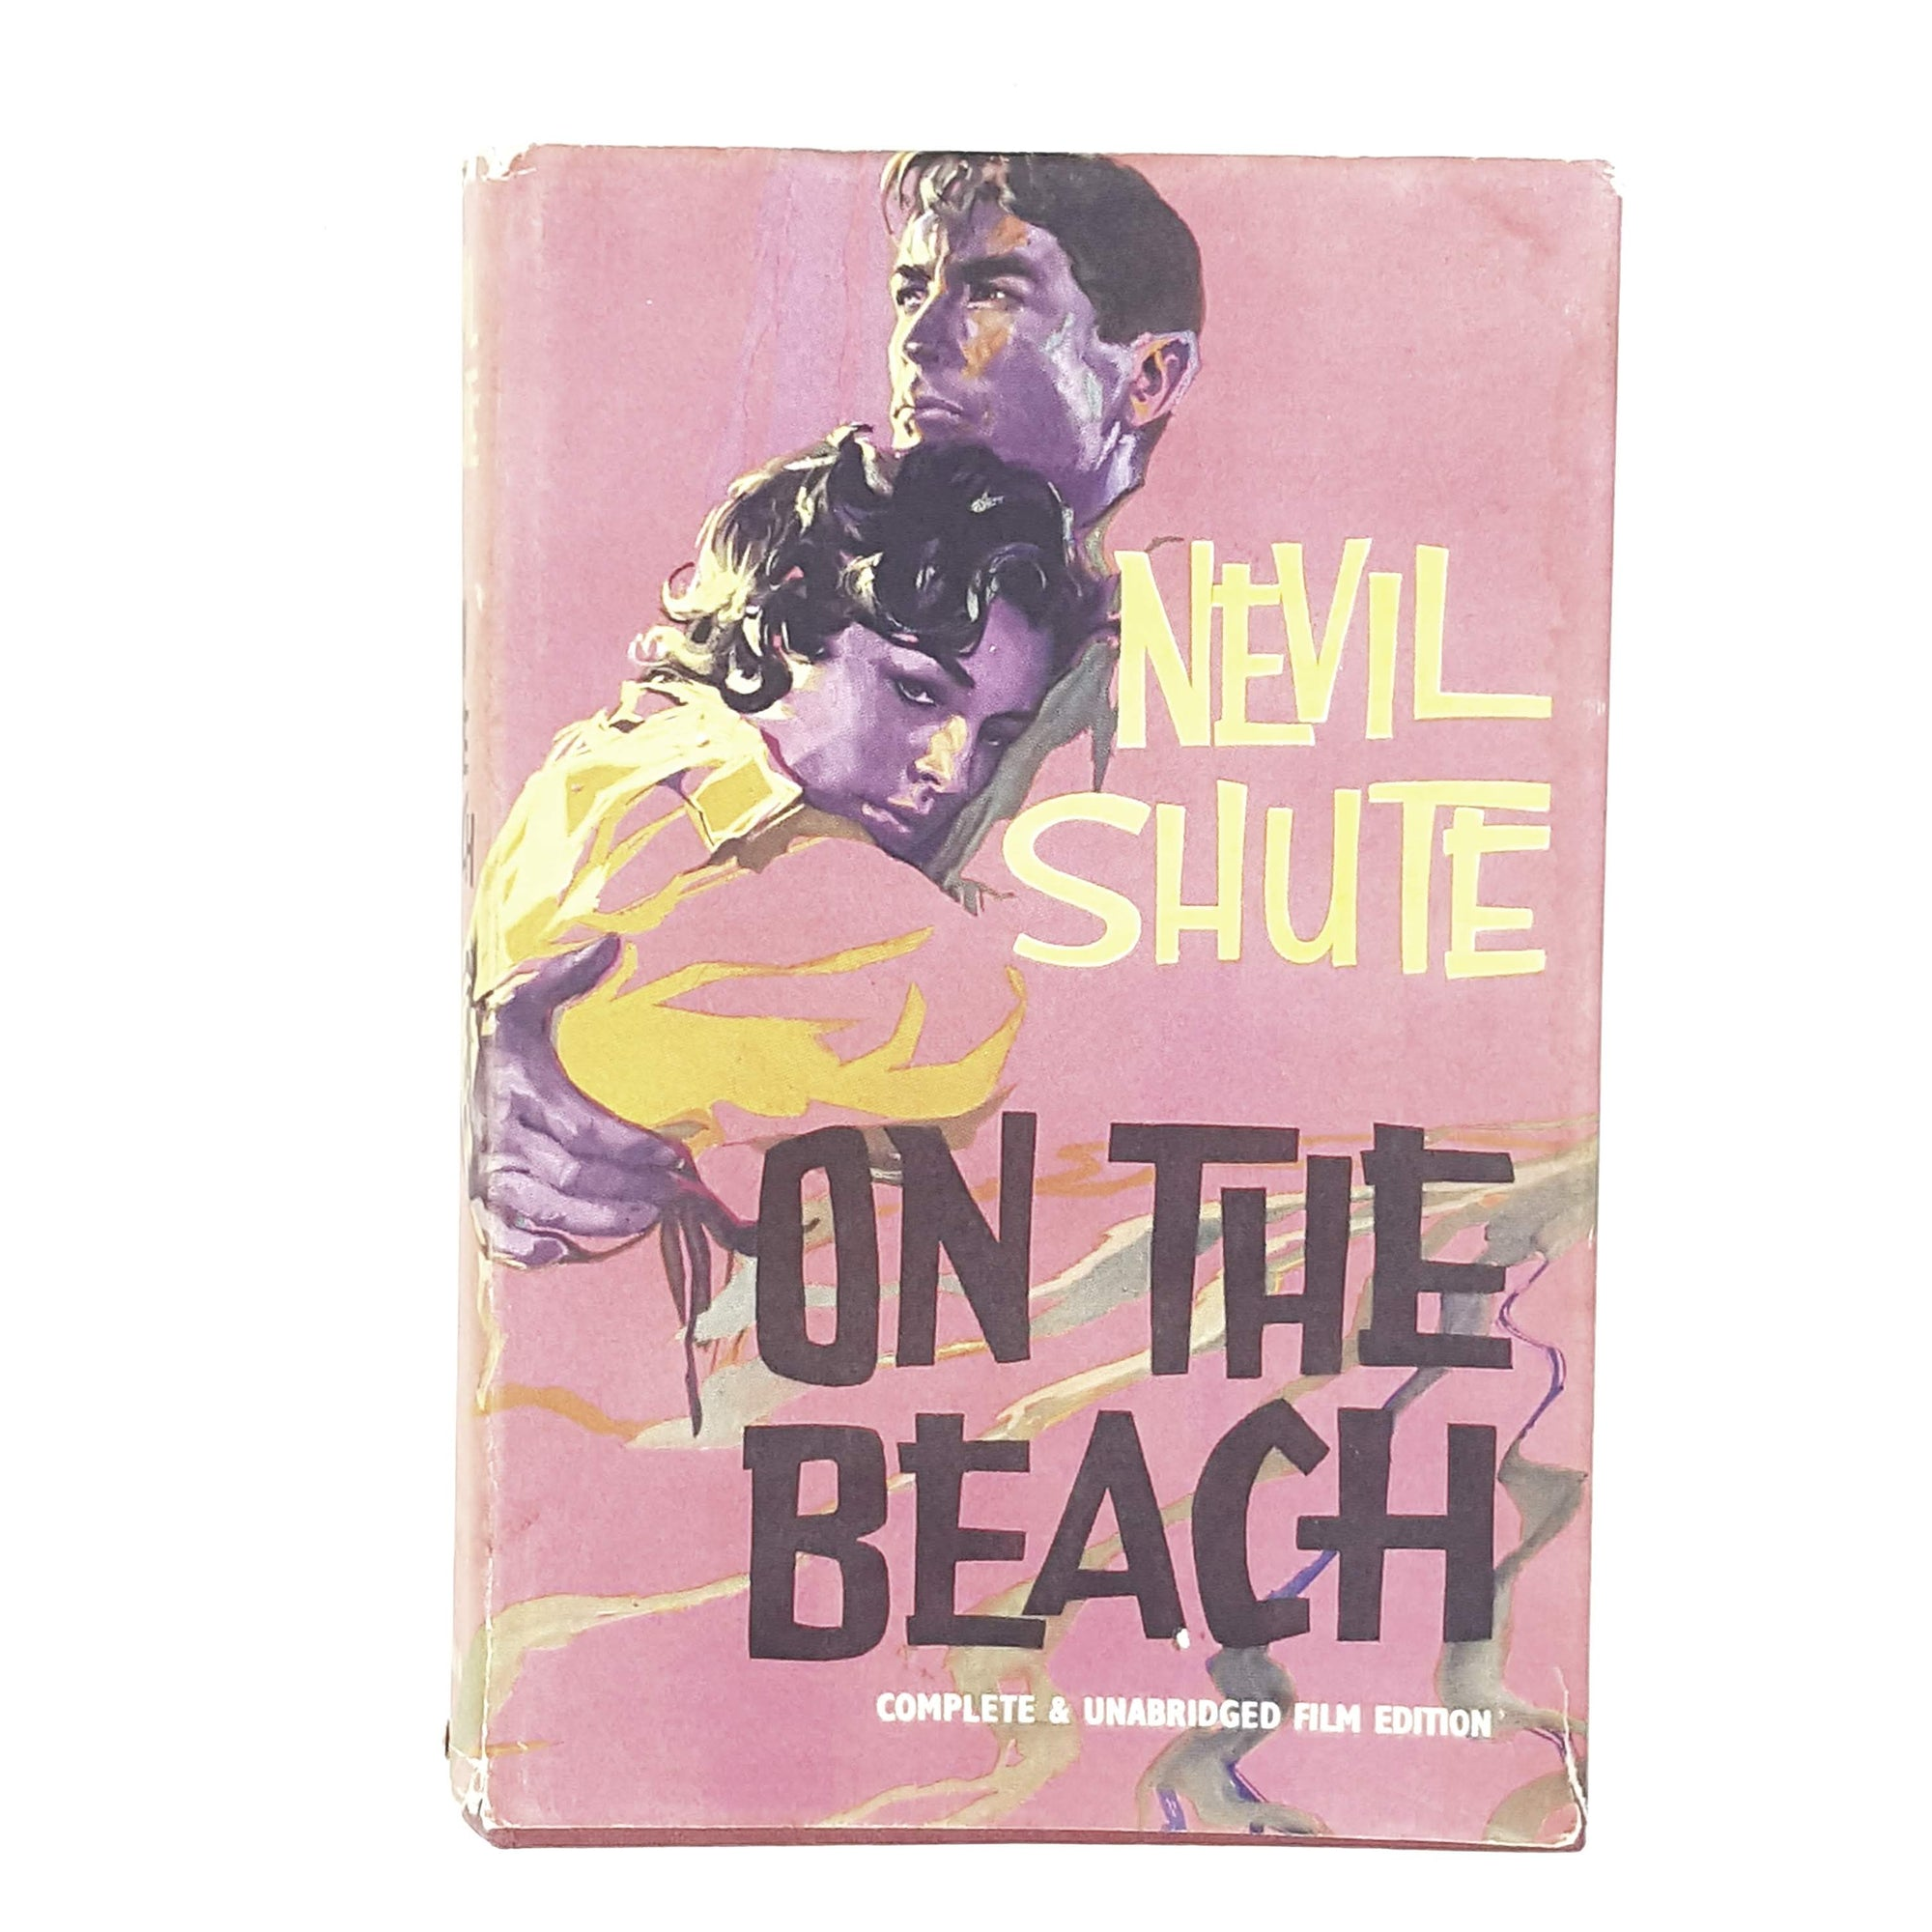 On the Beach by Nevil Shute 1959